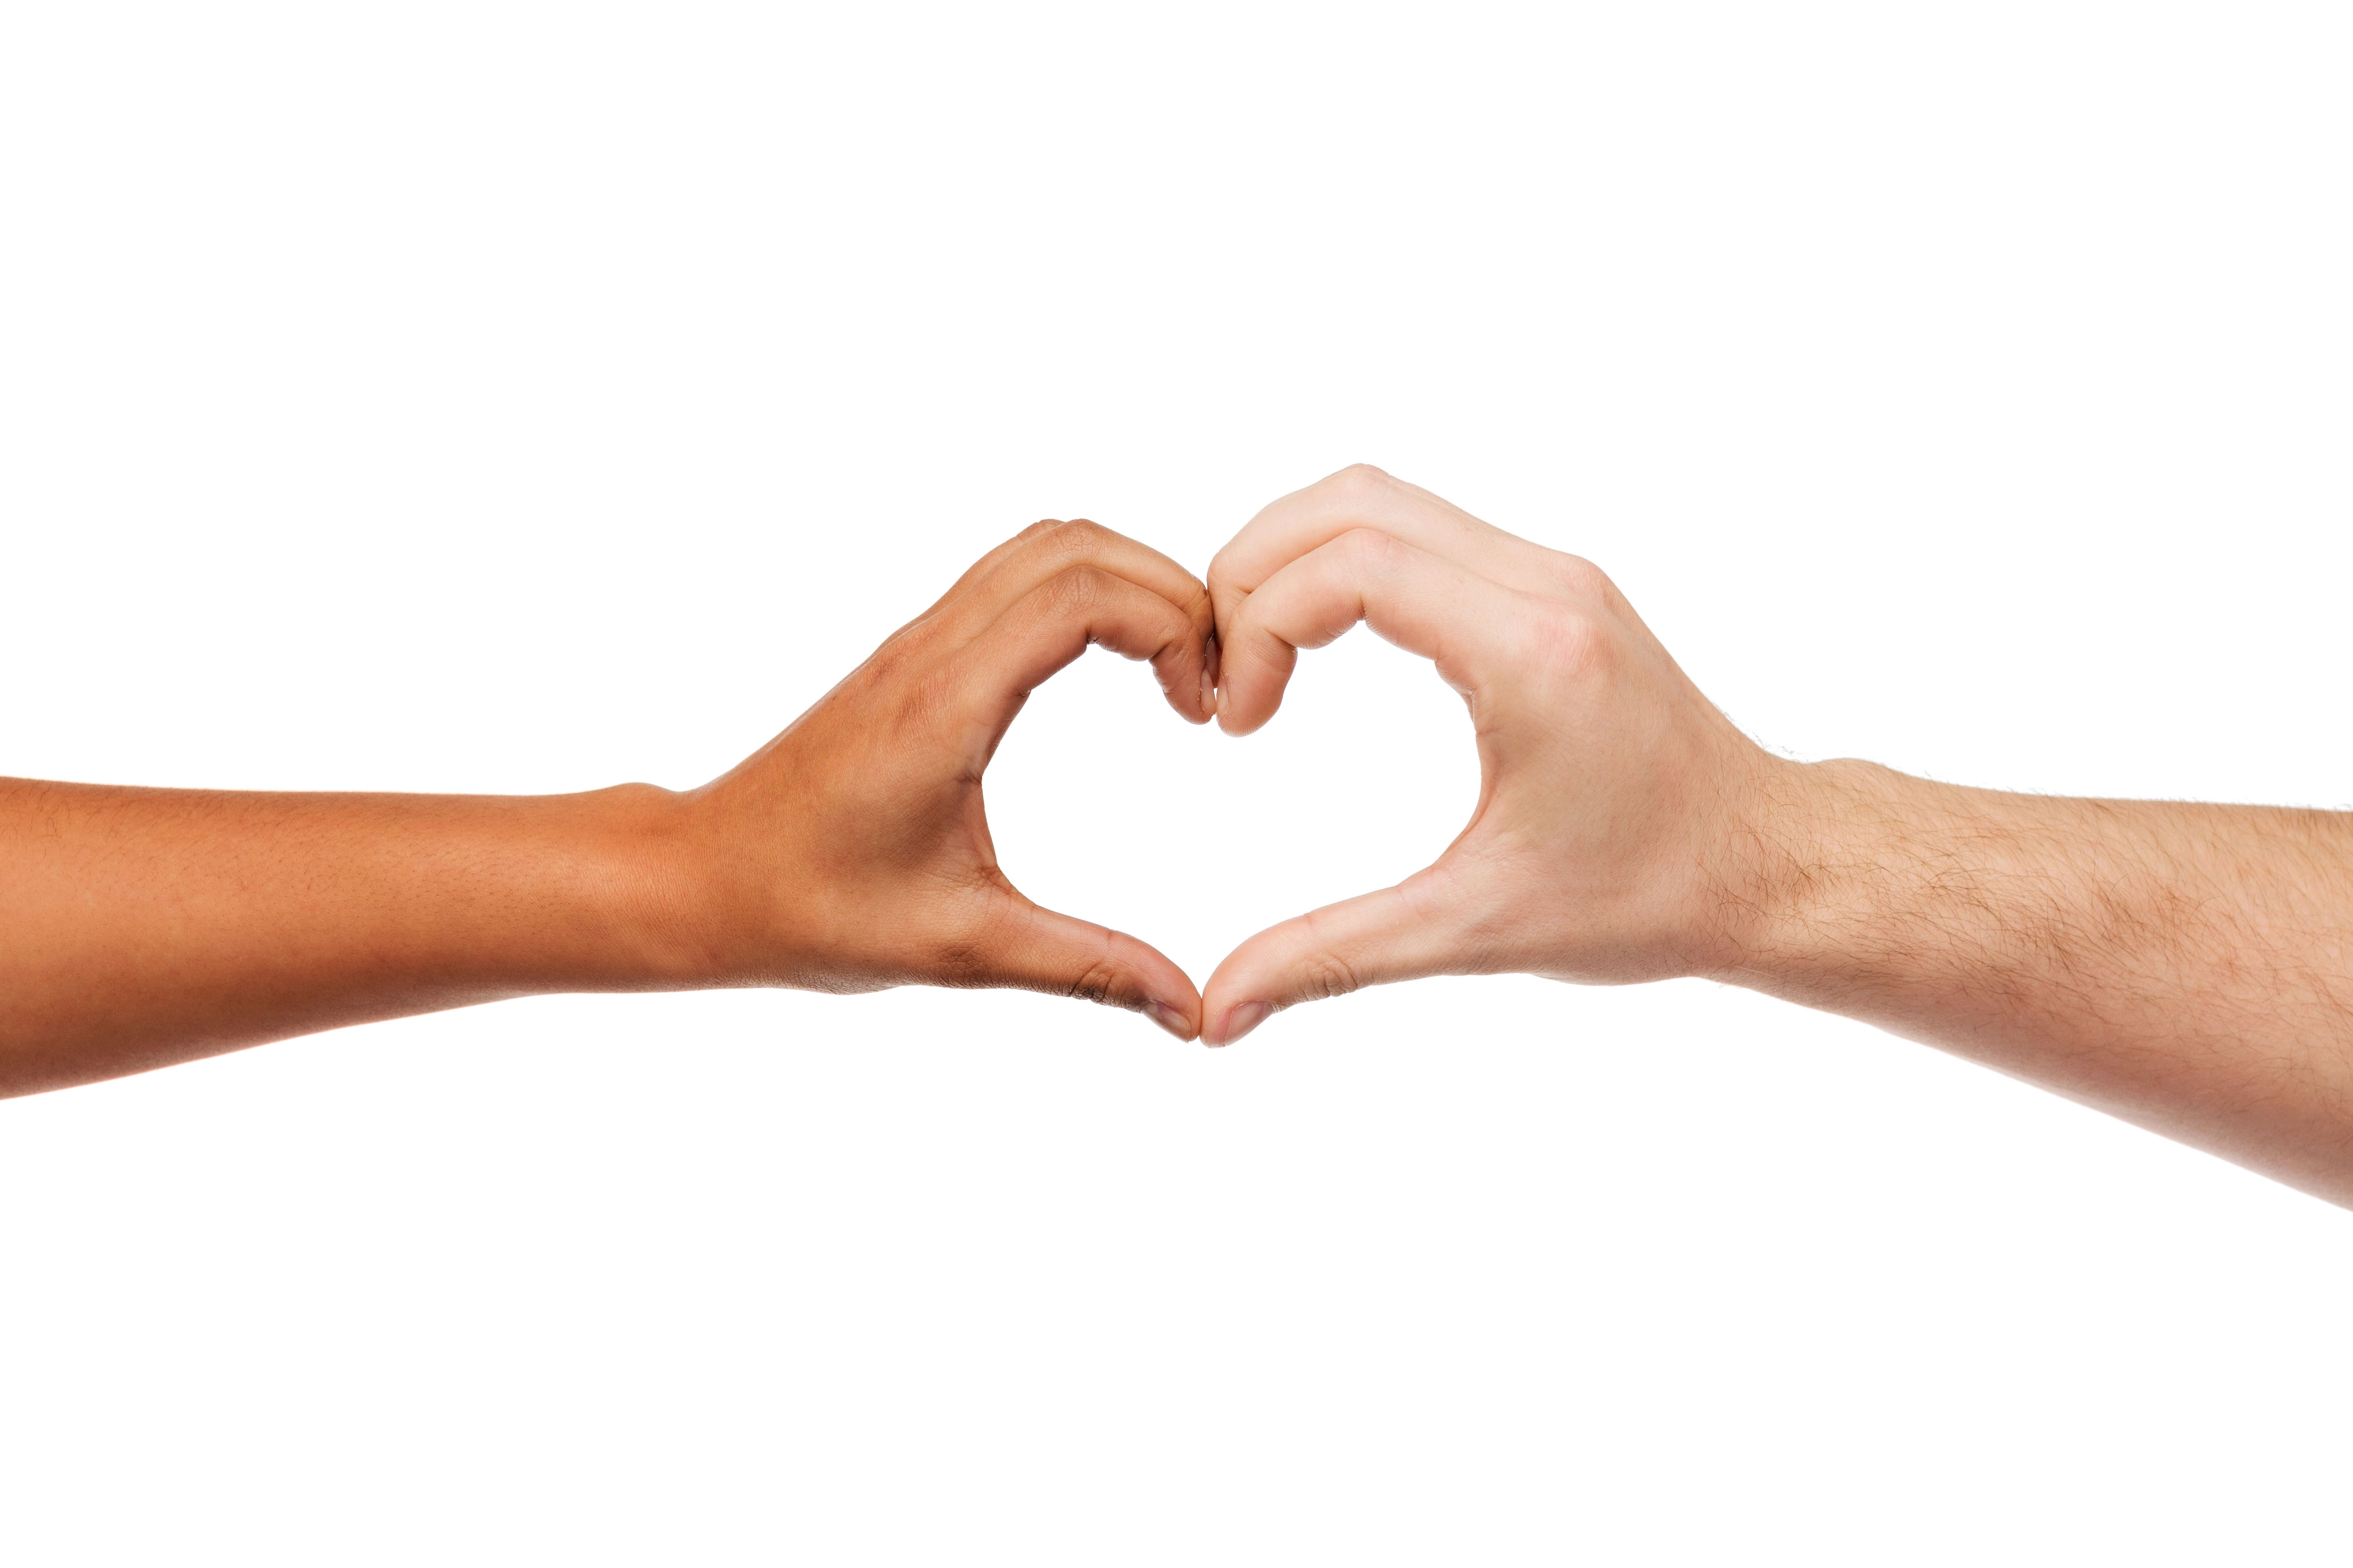 Two hands reach out toward each other to form a heart shape gesture.